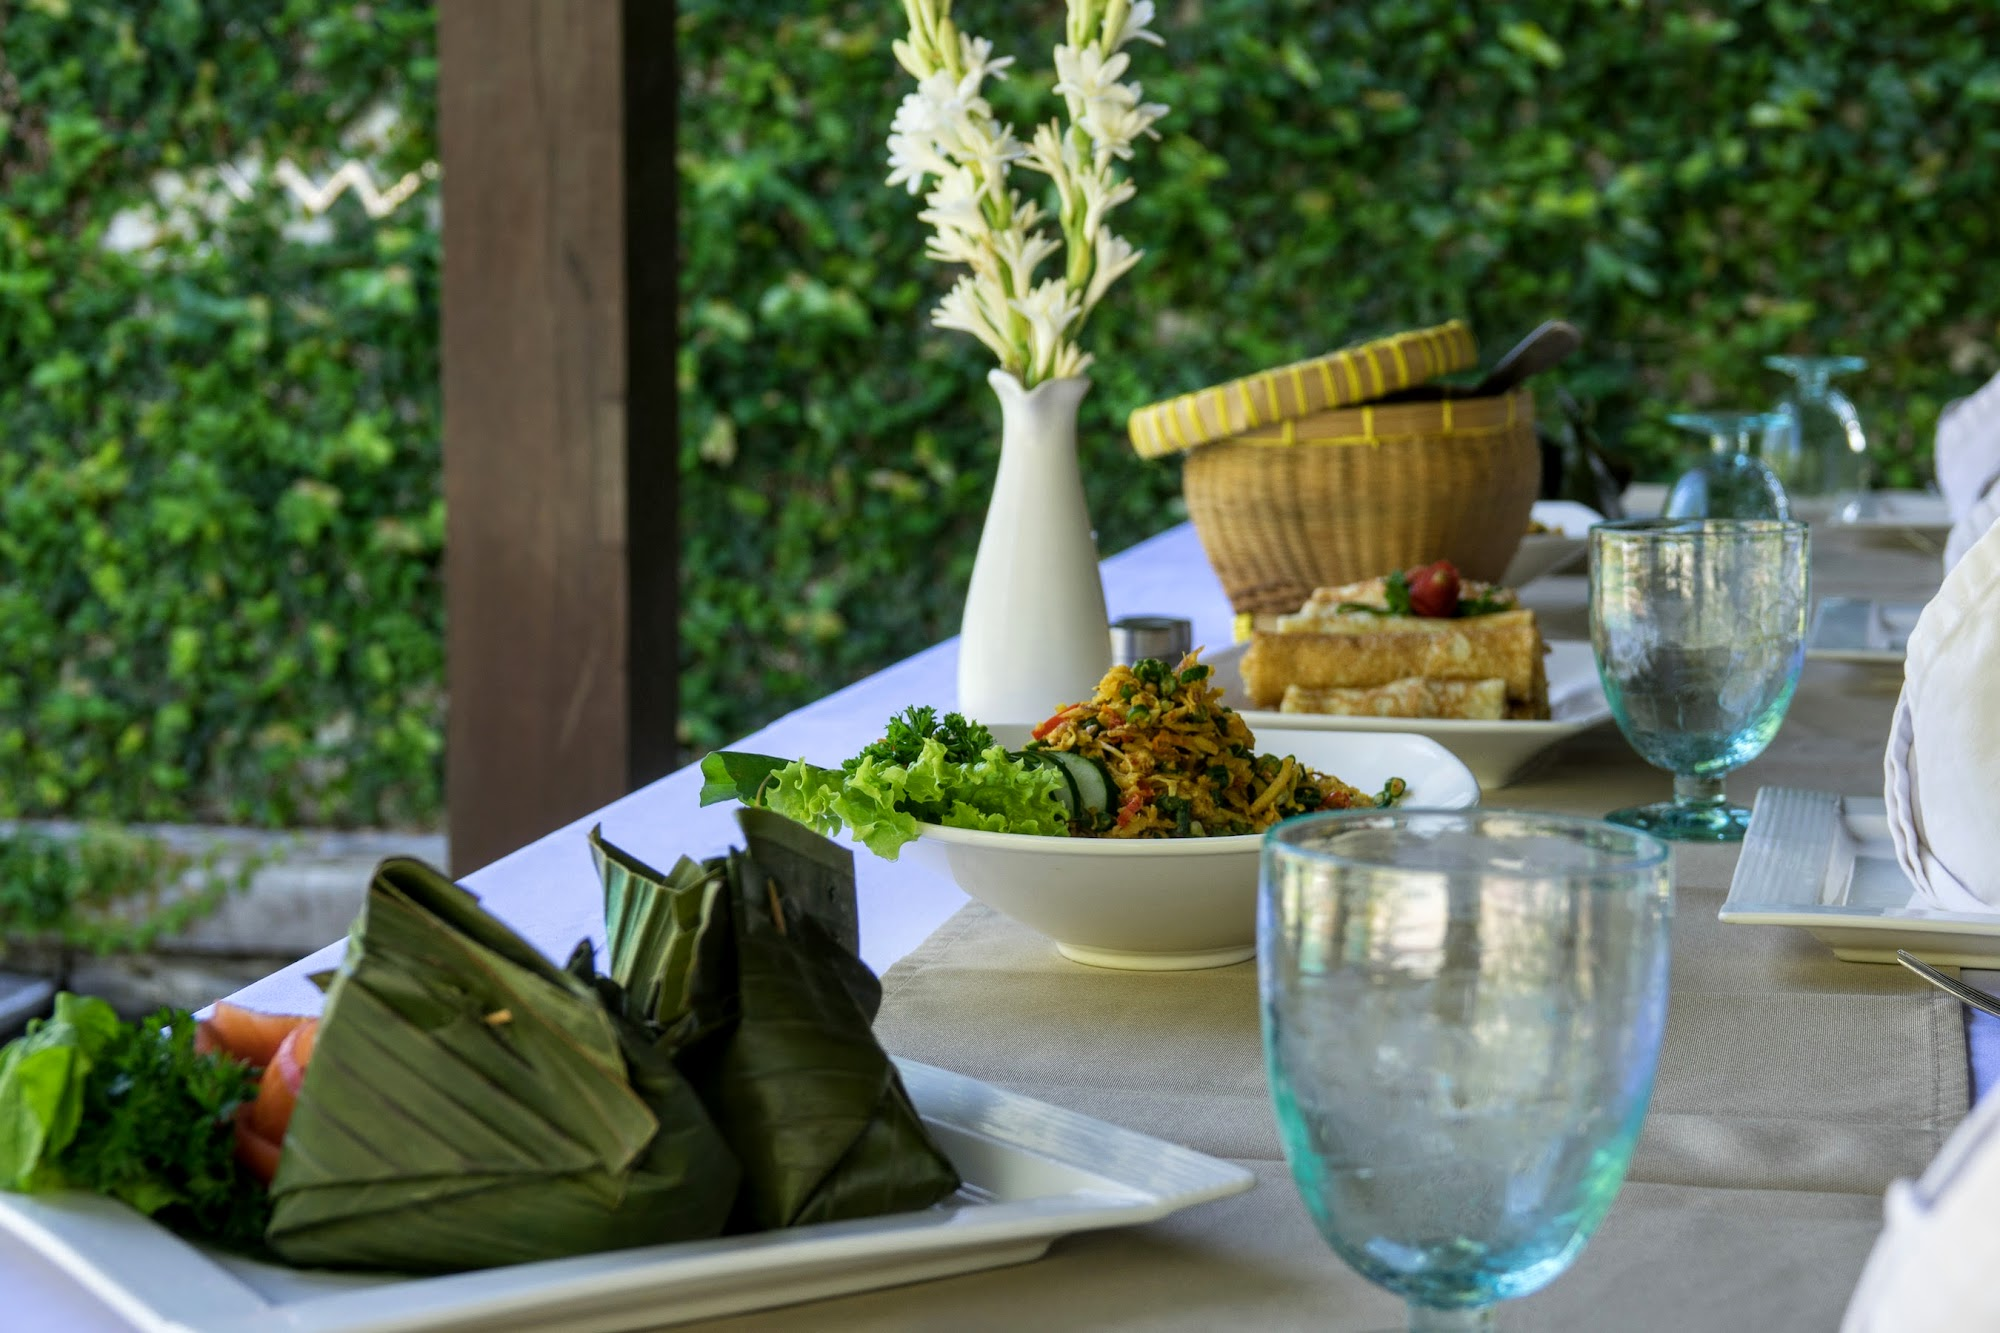 A Taste Of Indonesia Balinese Cooking Class At The Amala Ze - Cuisine balinaise